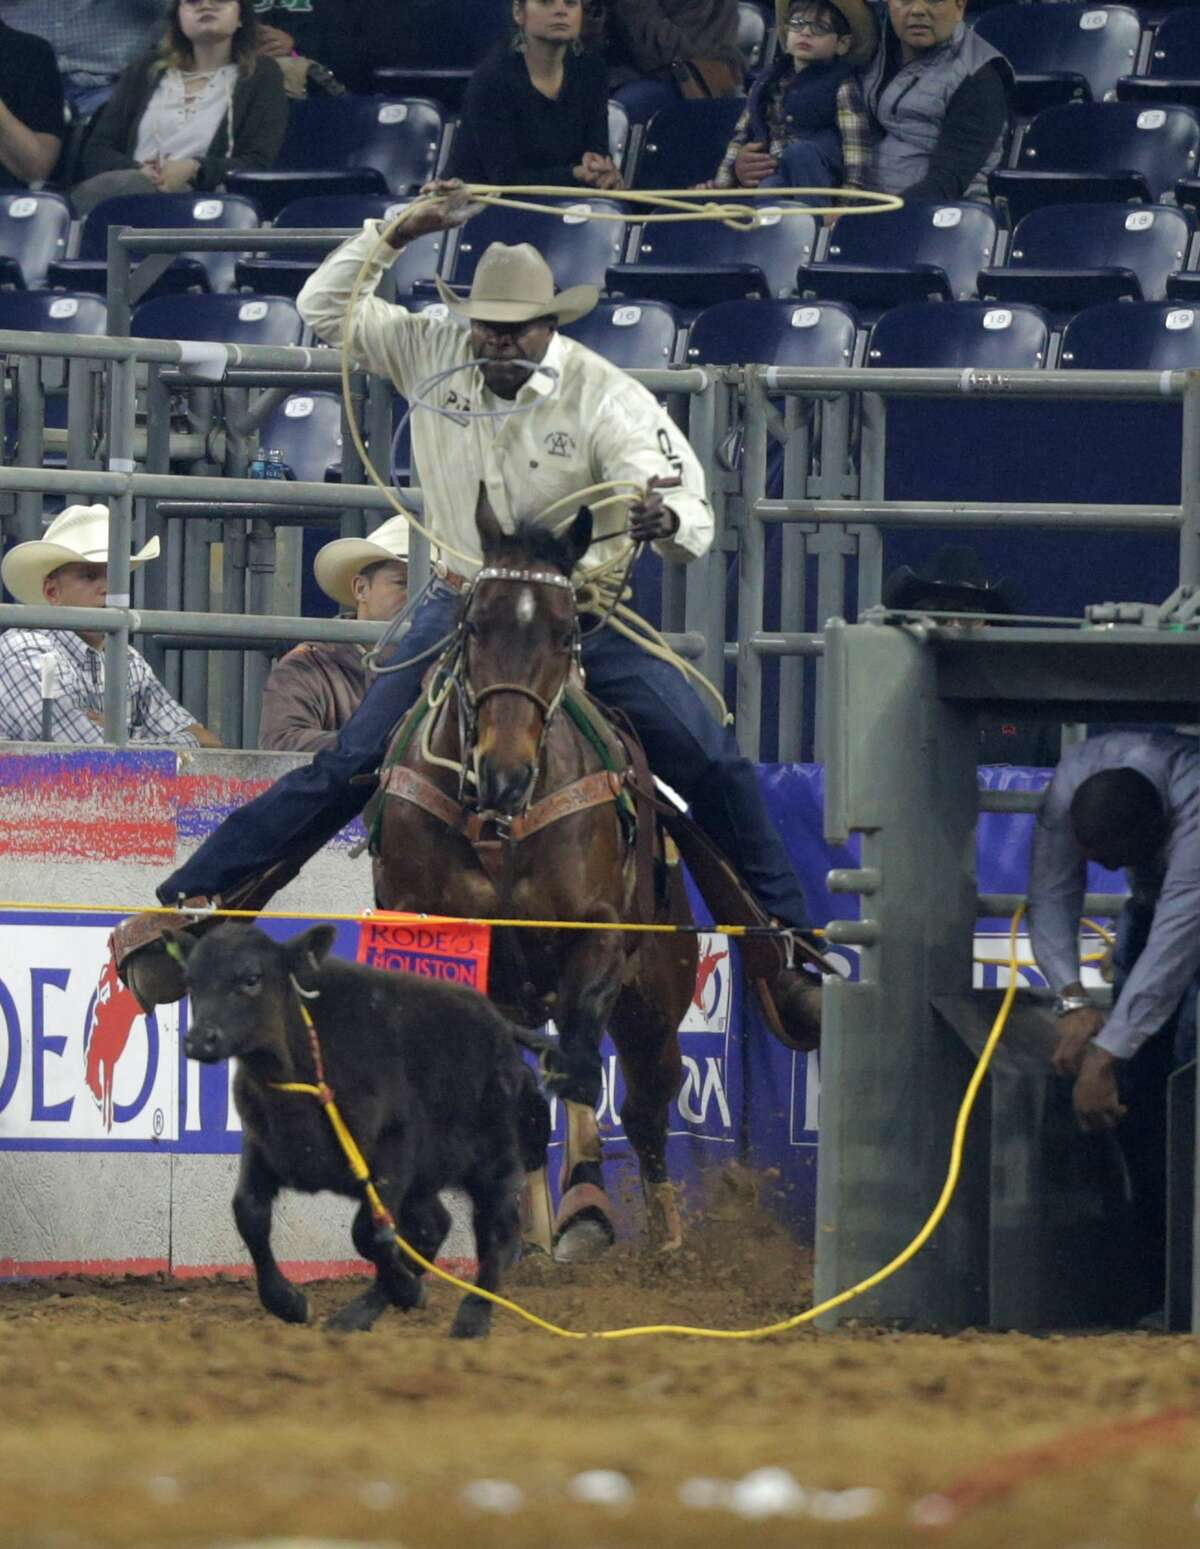 Fred Whitfield of Hockley, Texas prepares to rope a calf during the tie-down roping competition. Whitfield placed first. Rodeo Houston at NRG on Sunday, March 12, 2017, in Houston. ( Elizabeth Conley / Houston Chronicle )